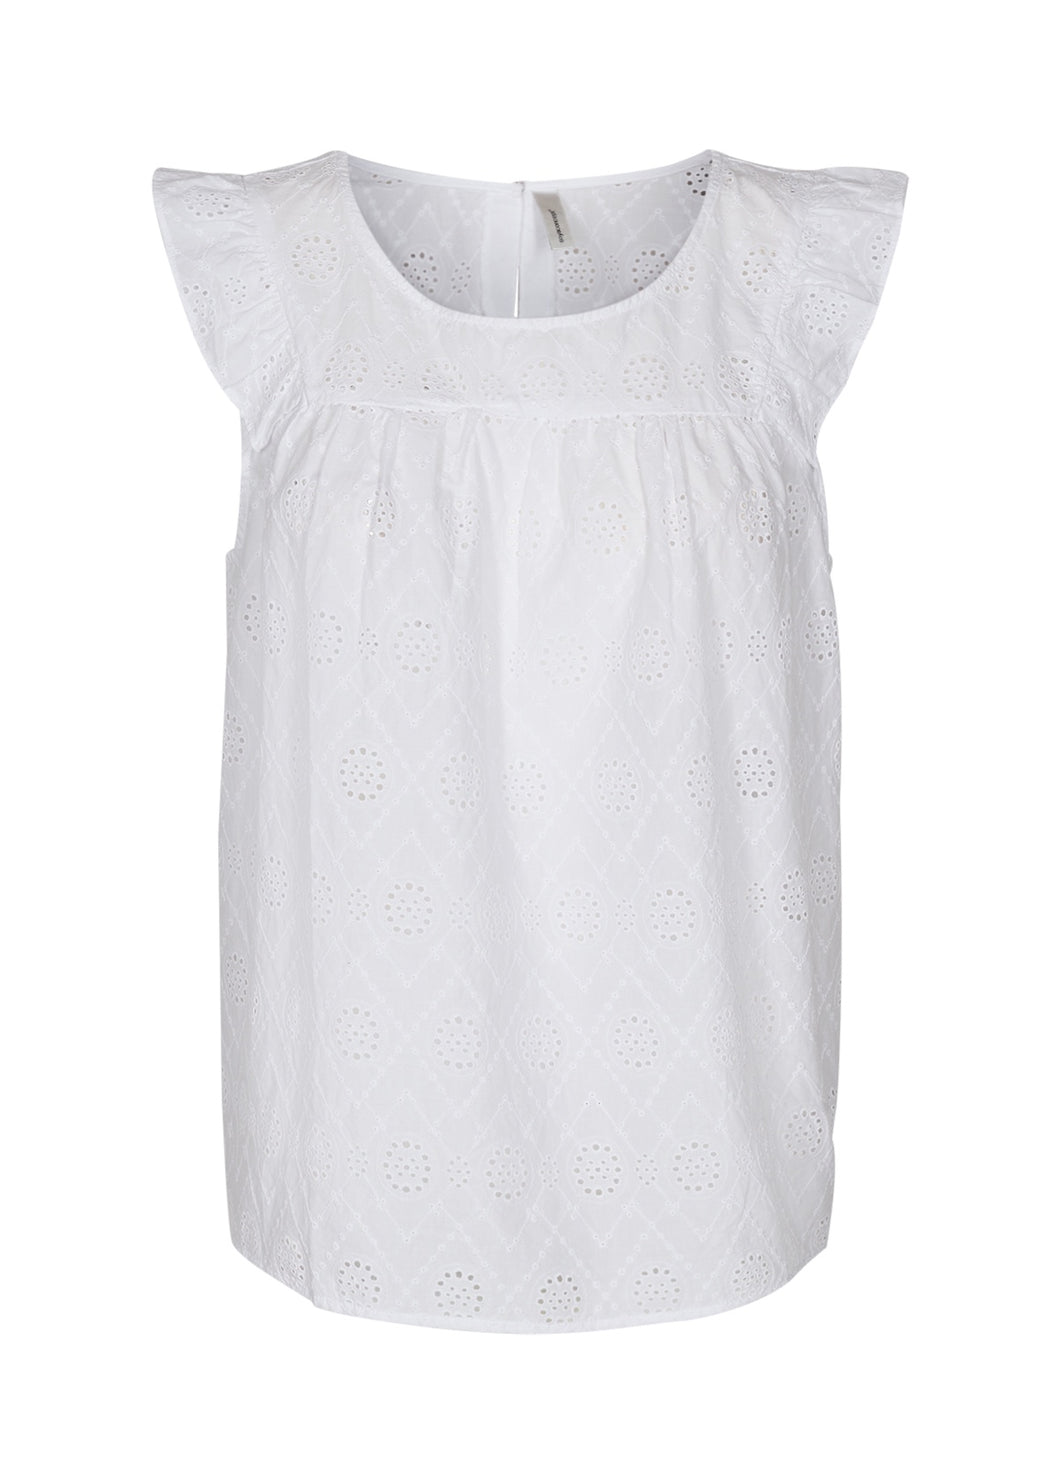 Soyaconcept Iani Top - White